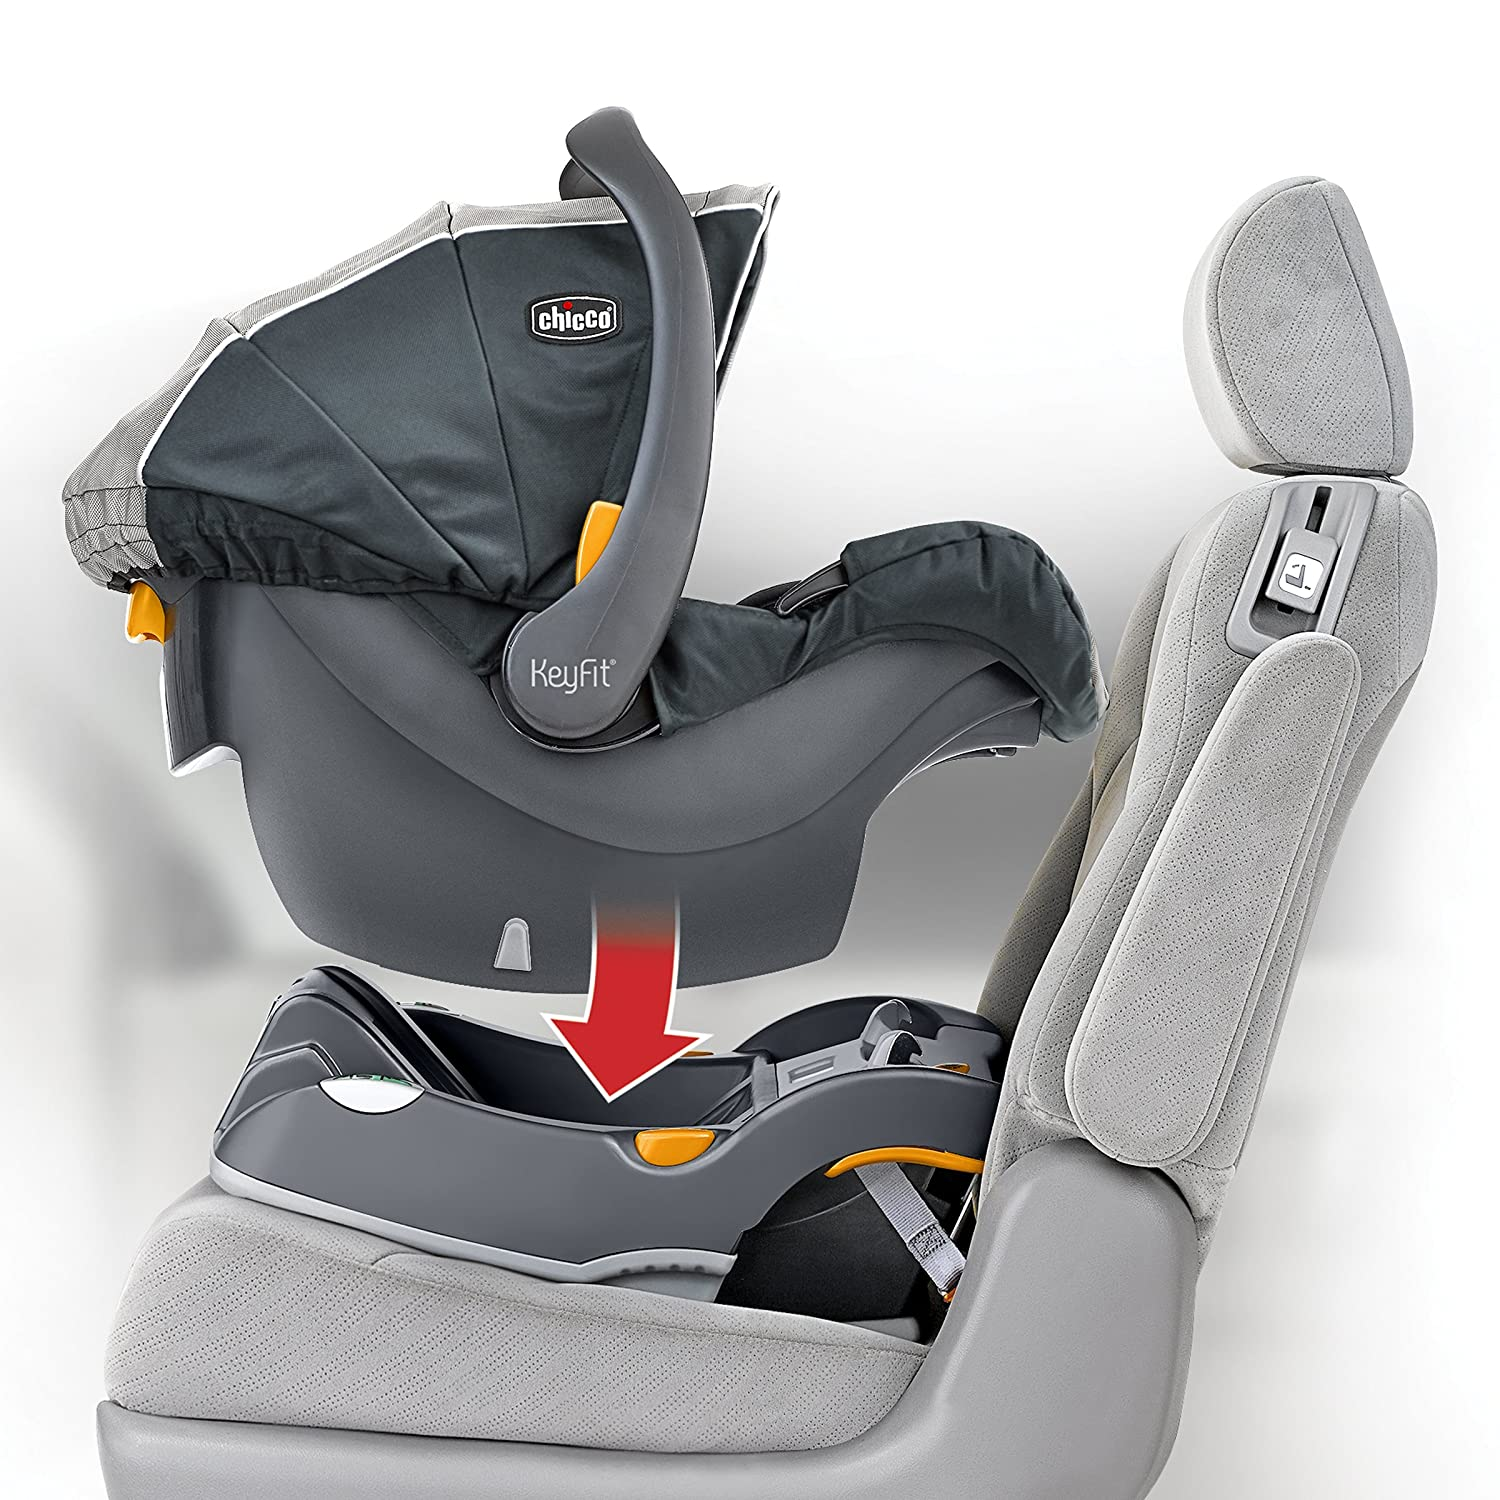 car seat base	  Amazon.com : Chicco KeyFit Infant Car Seat Base, Anthracite : Baby